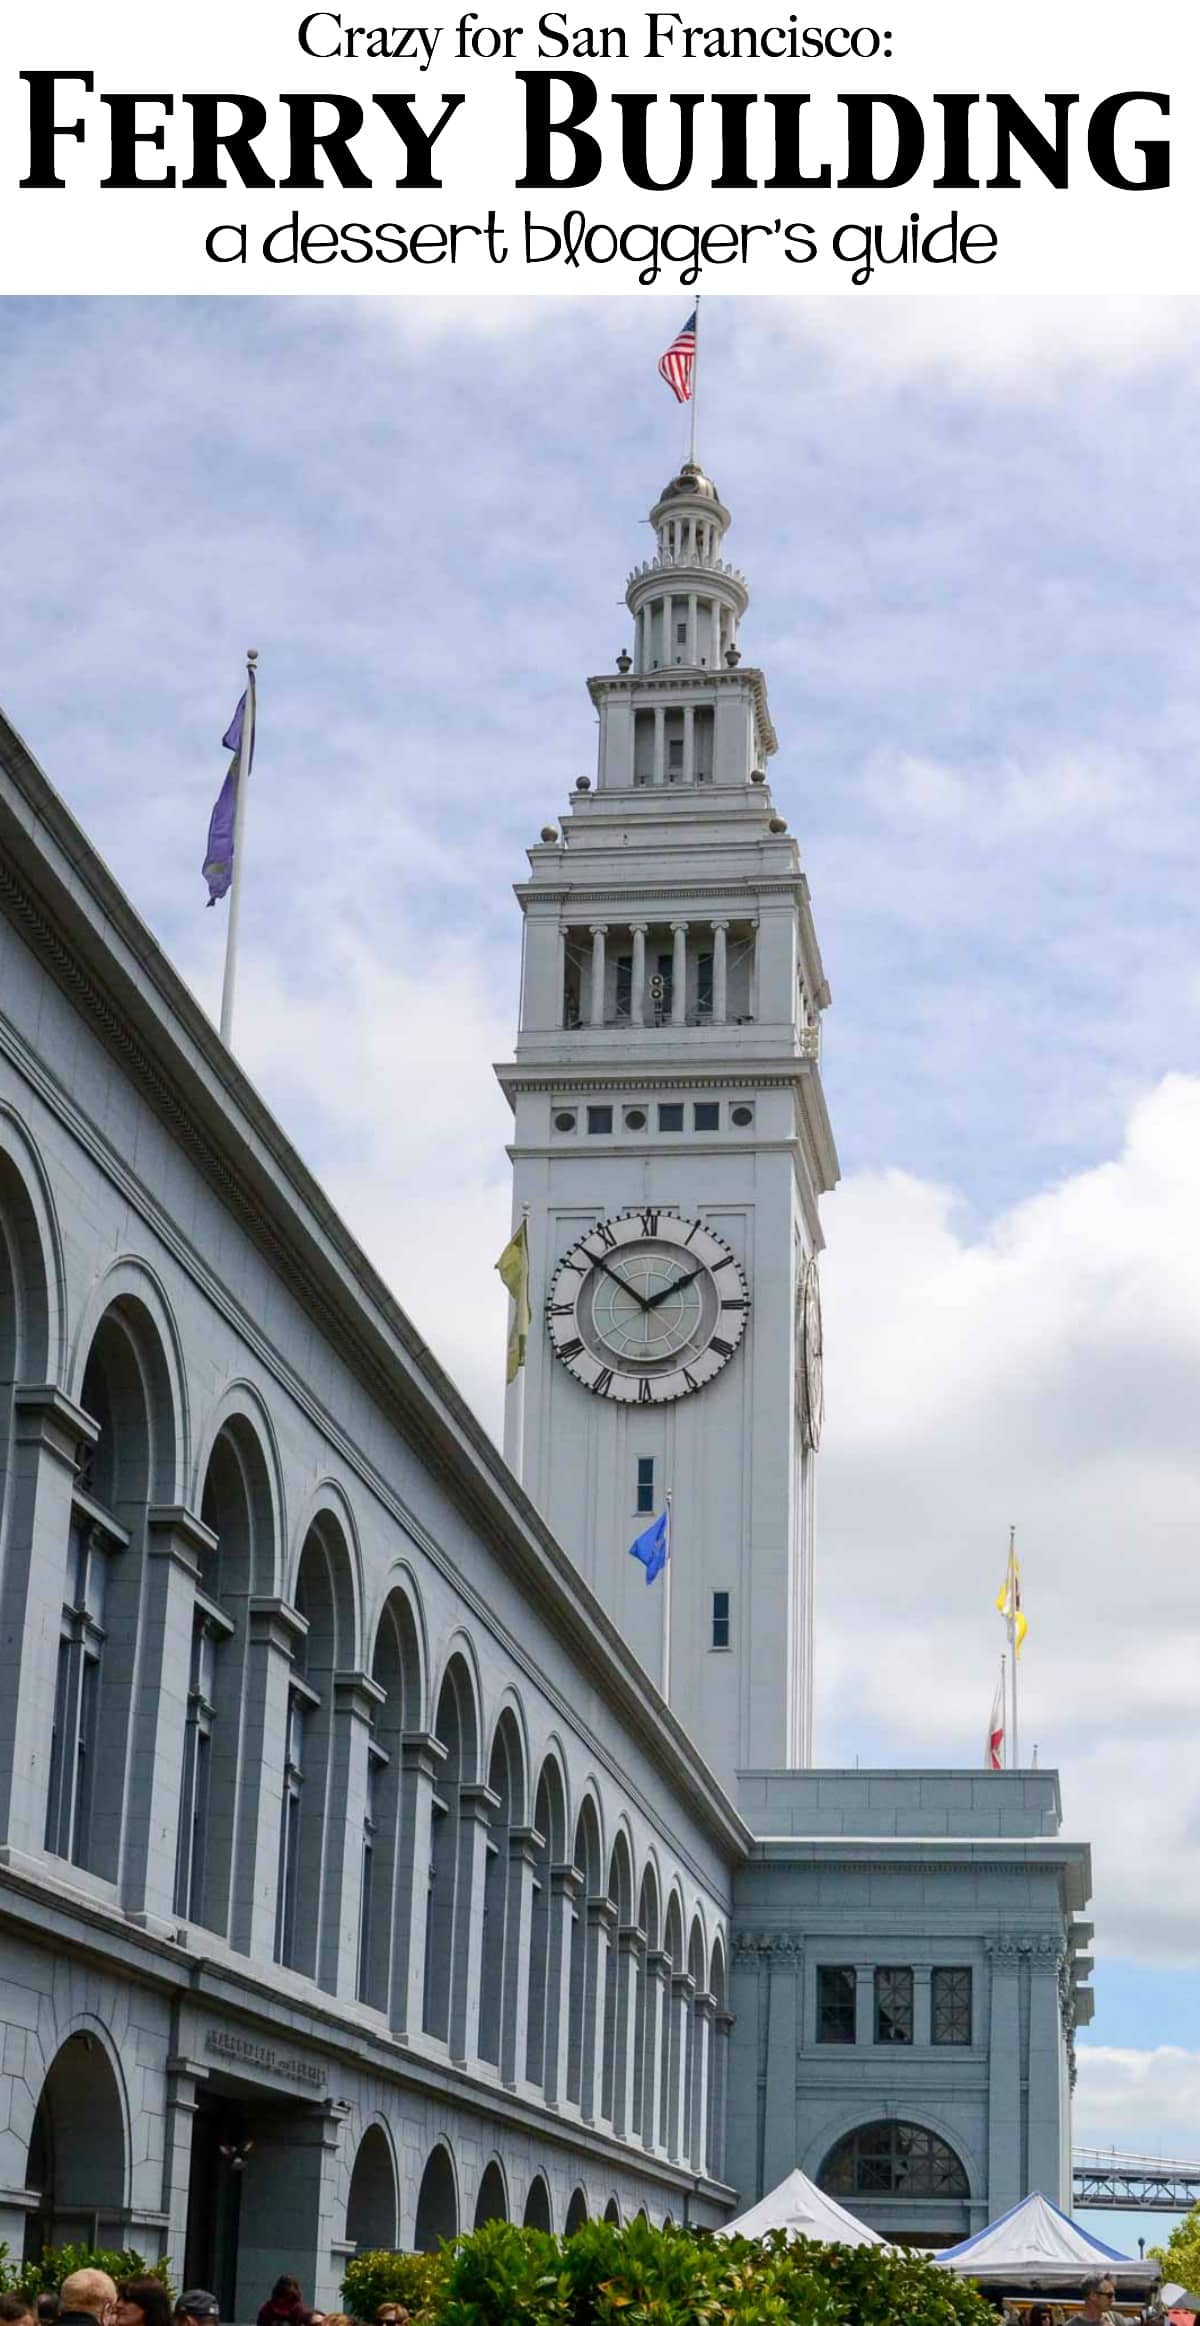 Crazy for San Francisco: The Ferry Building